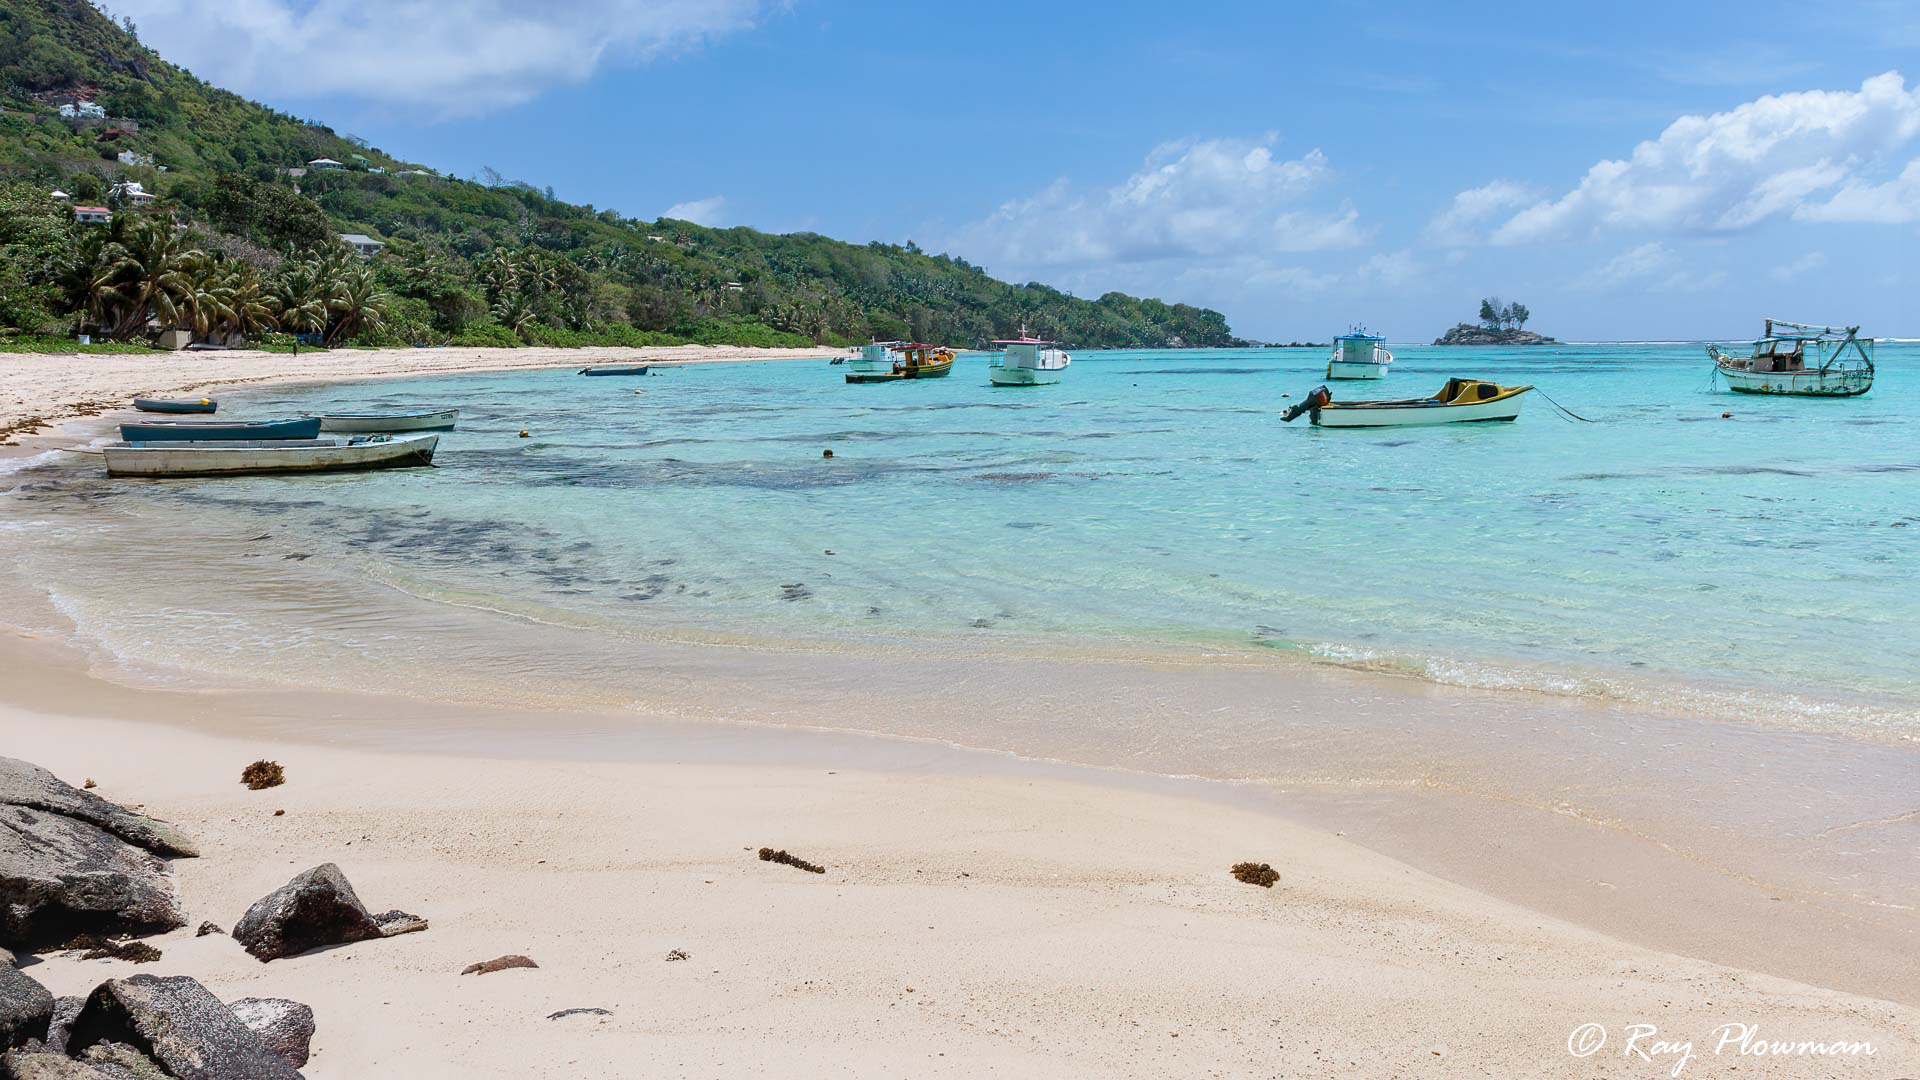 Fishing boats and Ile Souris at Anse Royale on Mahé island in Seychelles